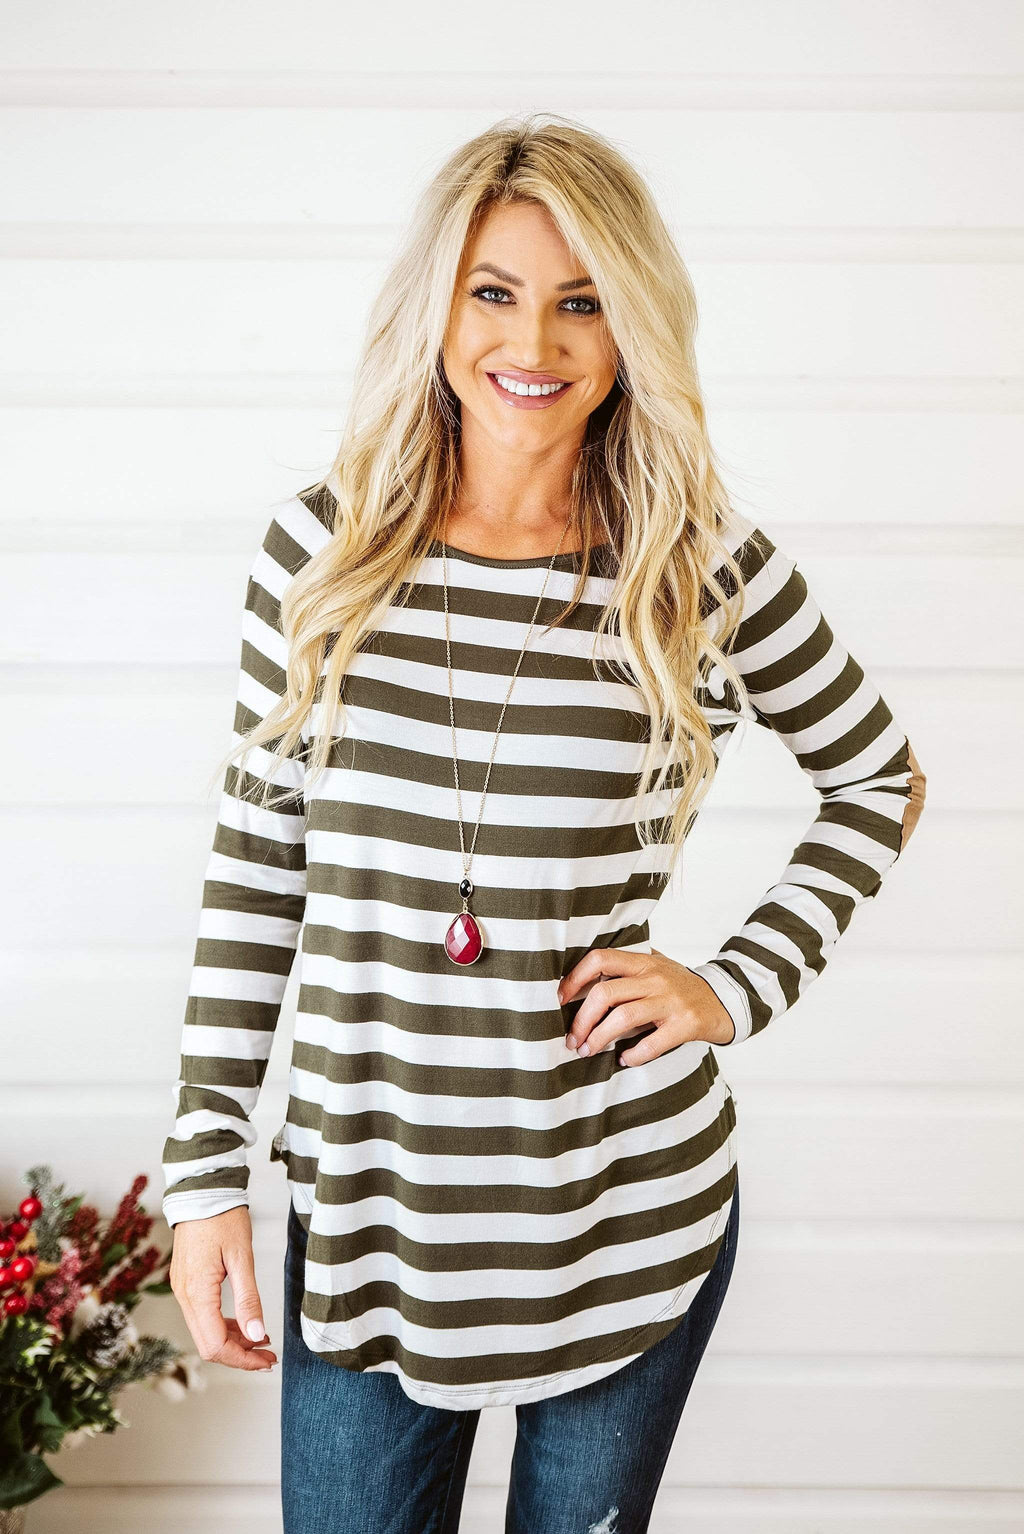 Glitzy Girlz Boutique Sassy Stripes Top, Olive